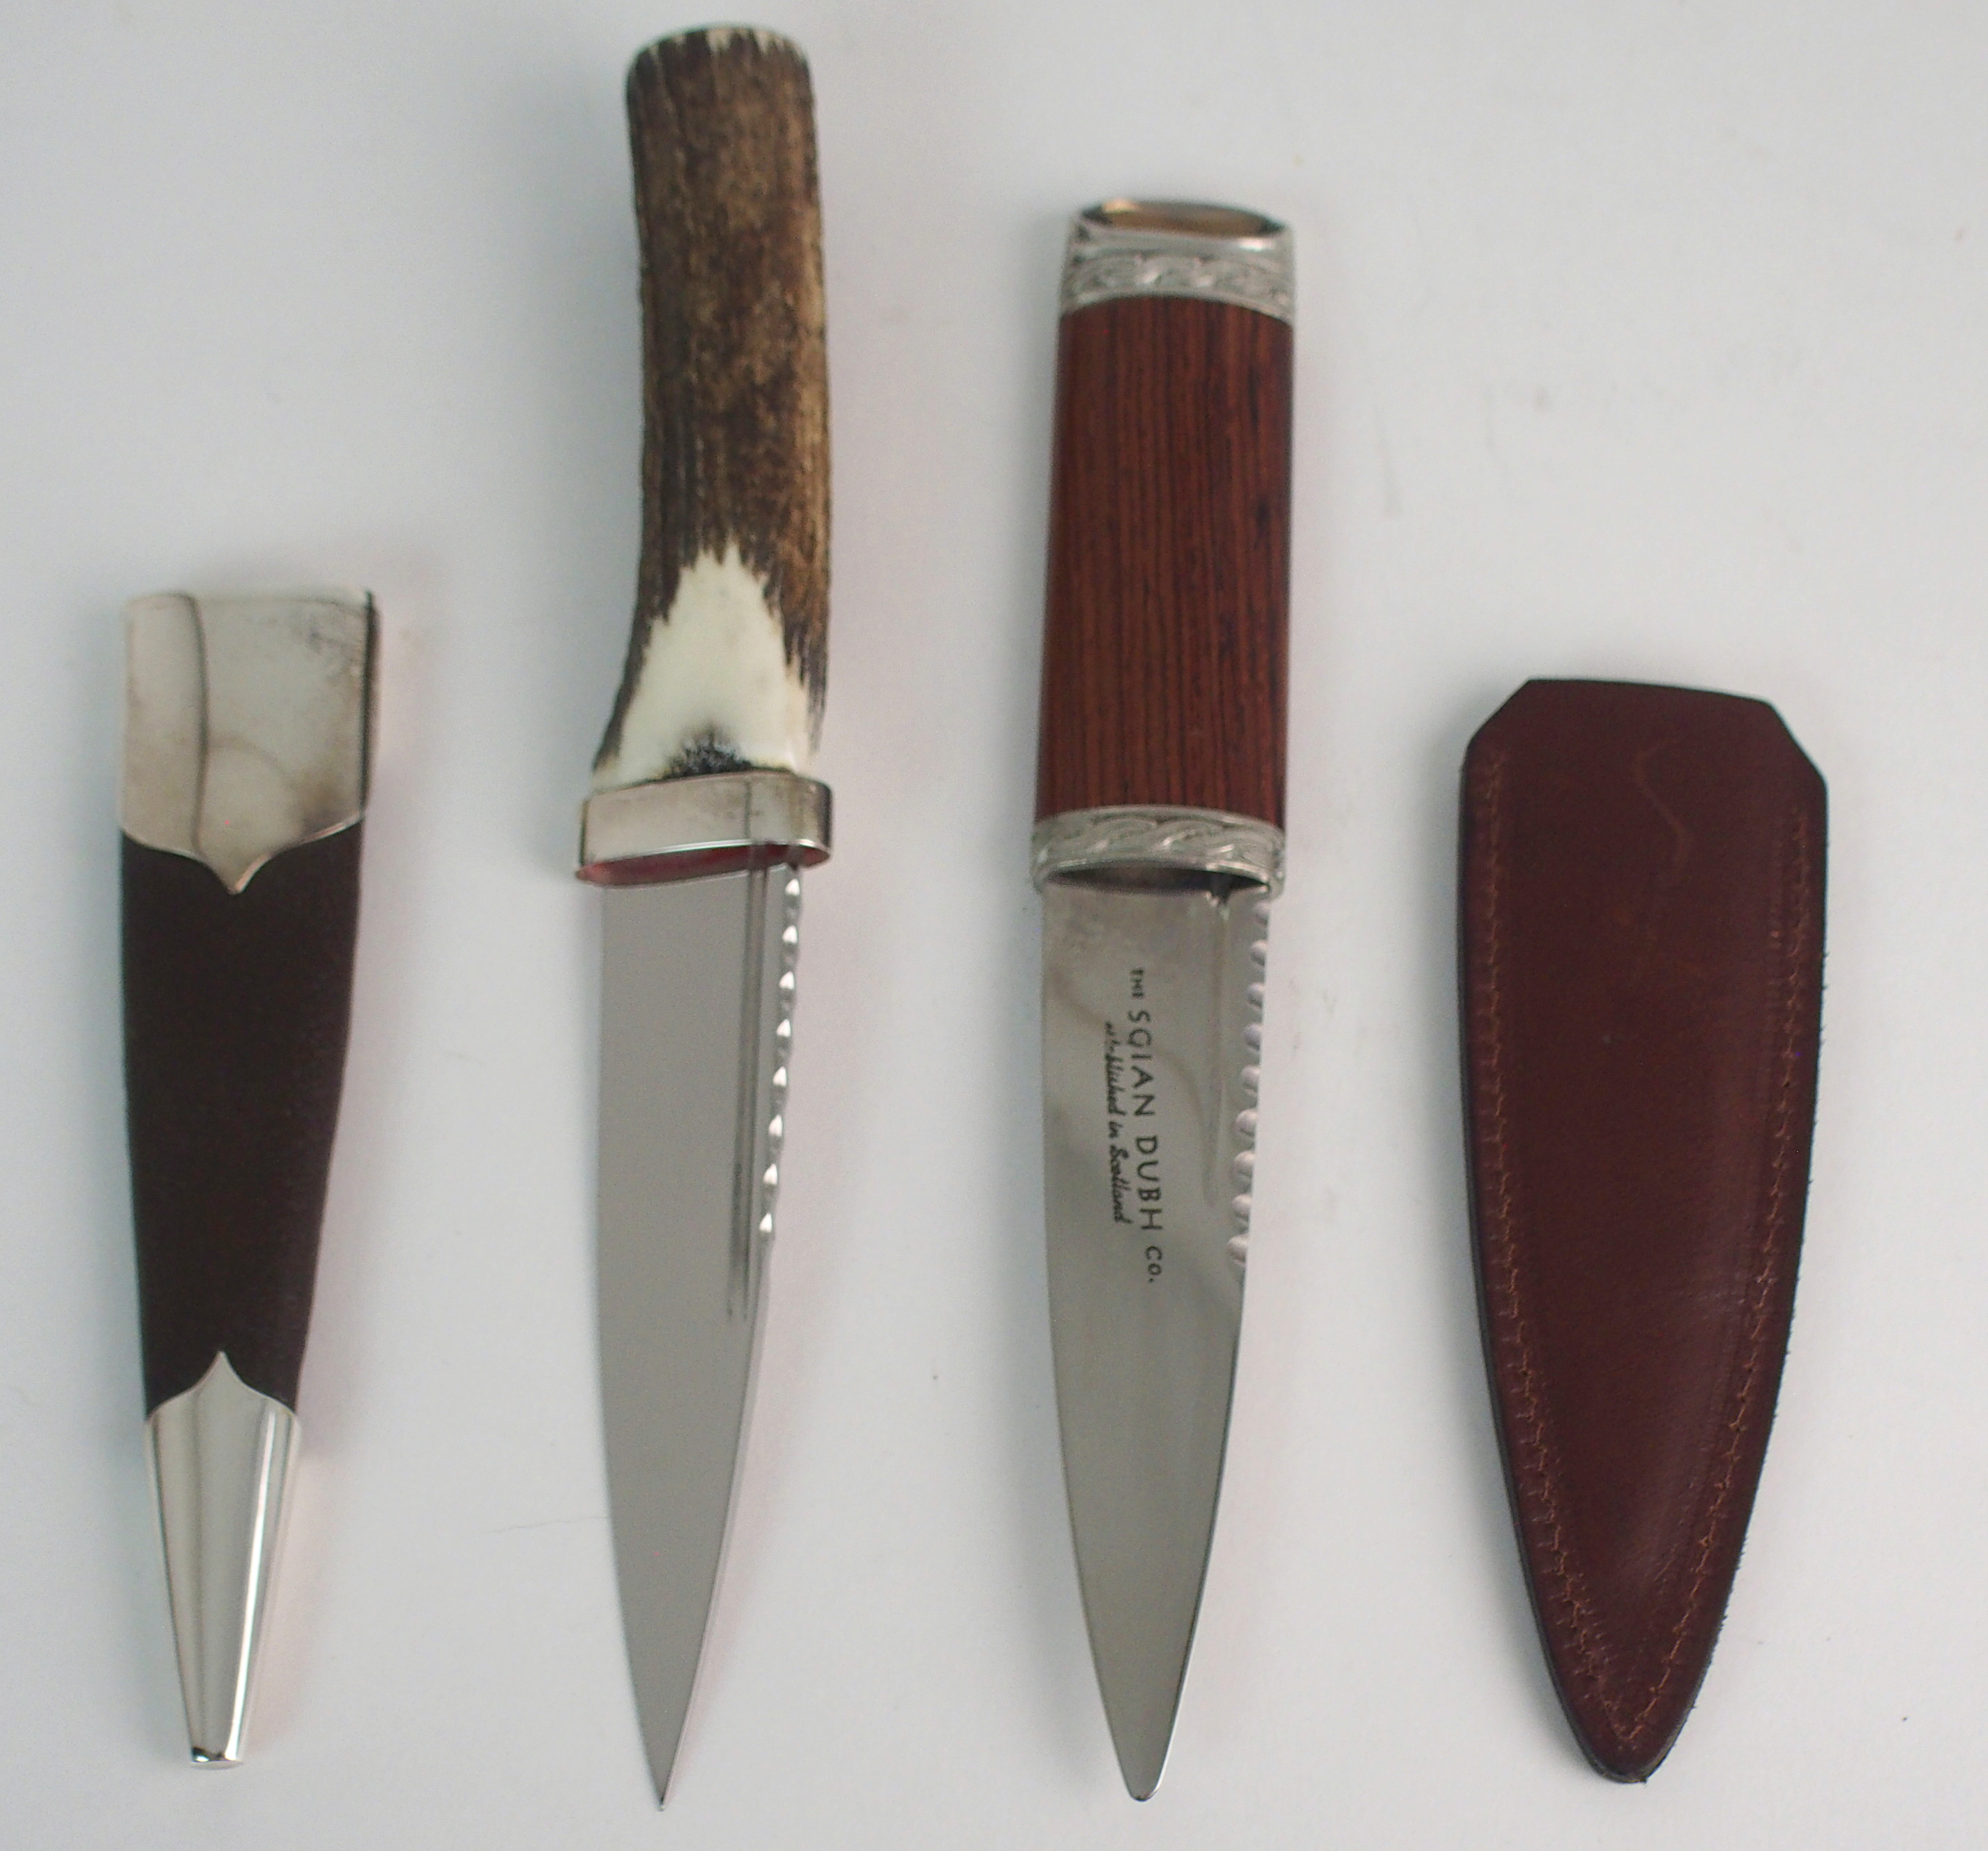 A SILVER-MOUNTED SGIAN DUBH BY HAMILTON & INCHES with brown goatskin scabbard and stag antler handle